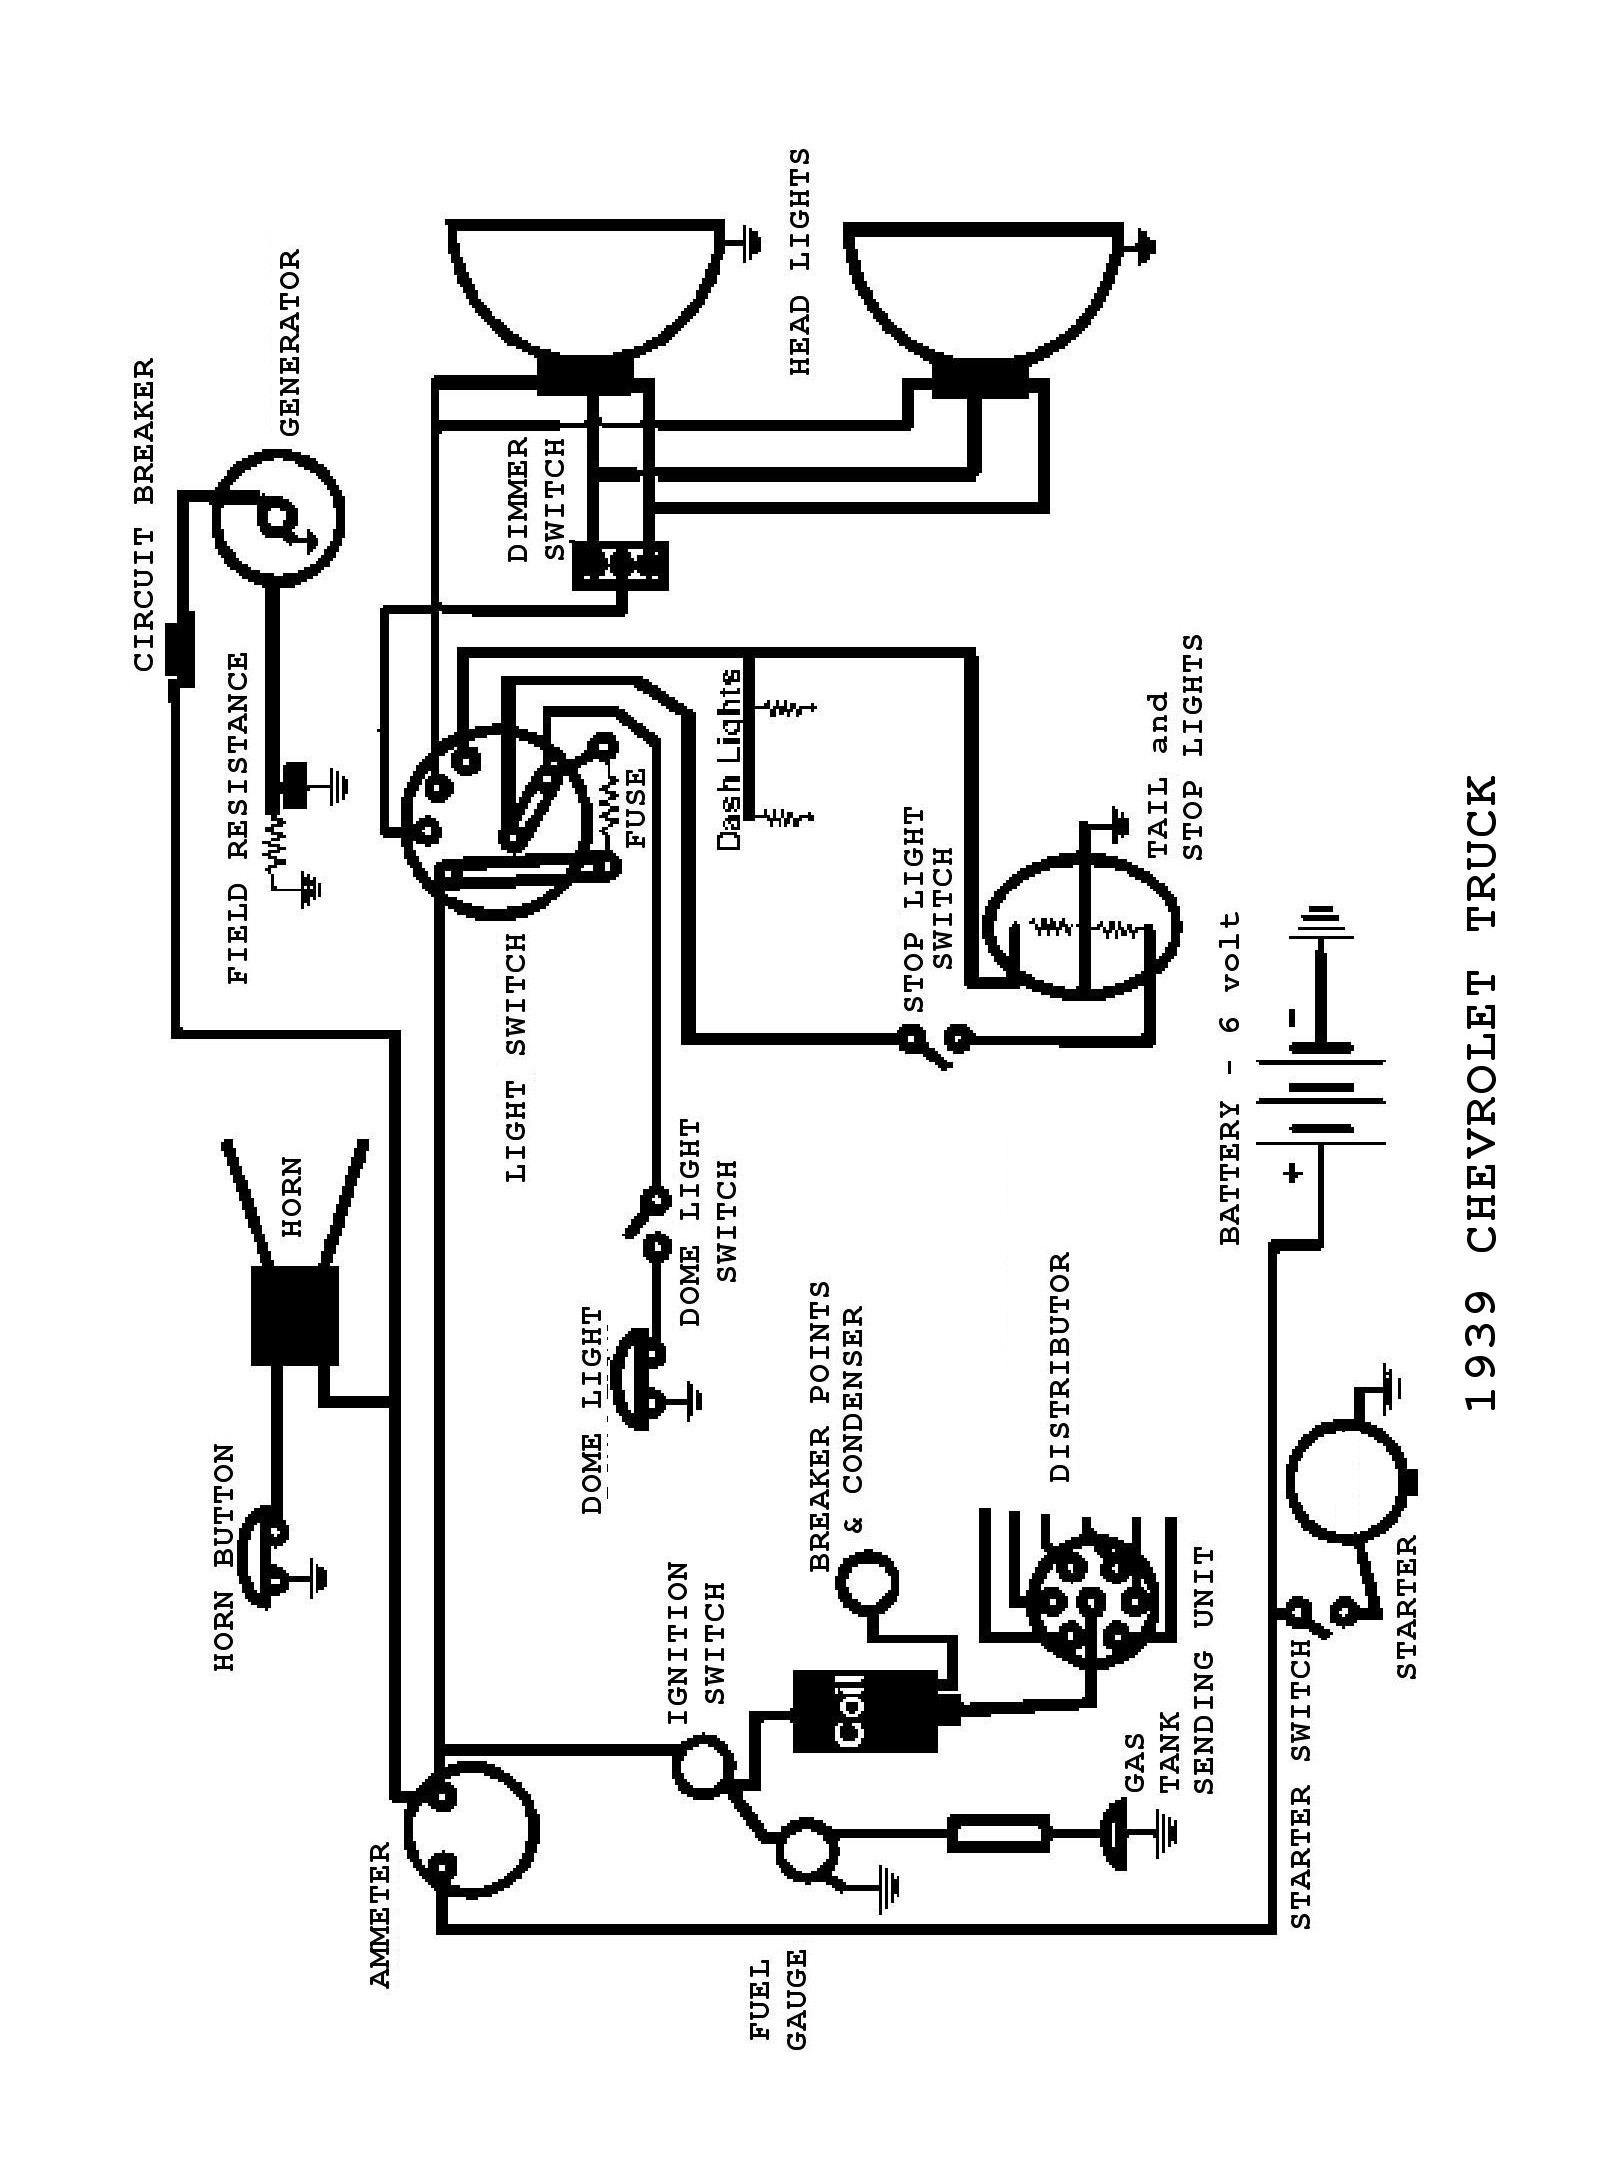 Diagram 4130 Ih Wiring Diagram Full Version Hd Quality Wiring Diagram Diagramhondap Gisbertovalori It